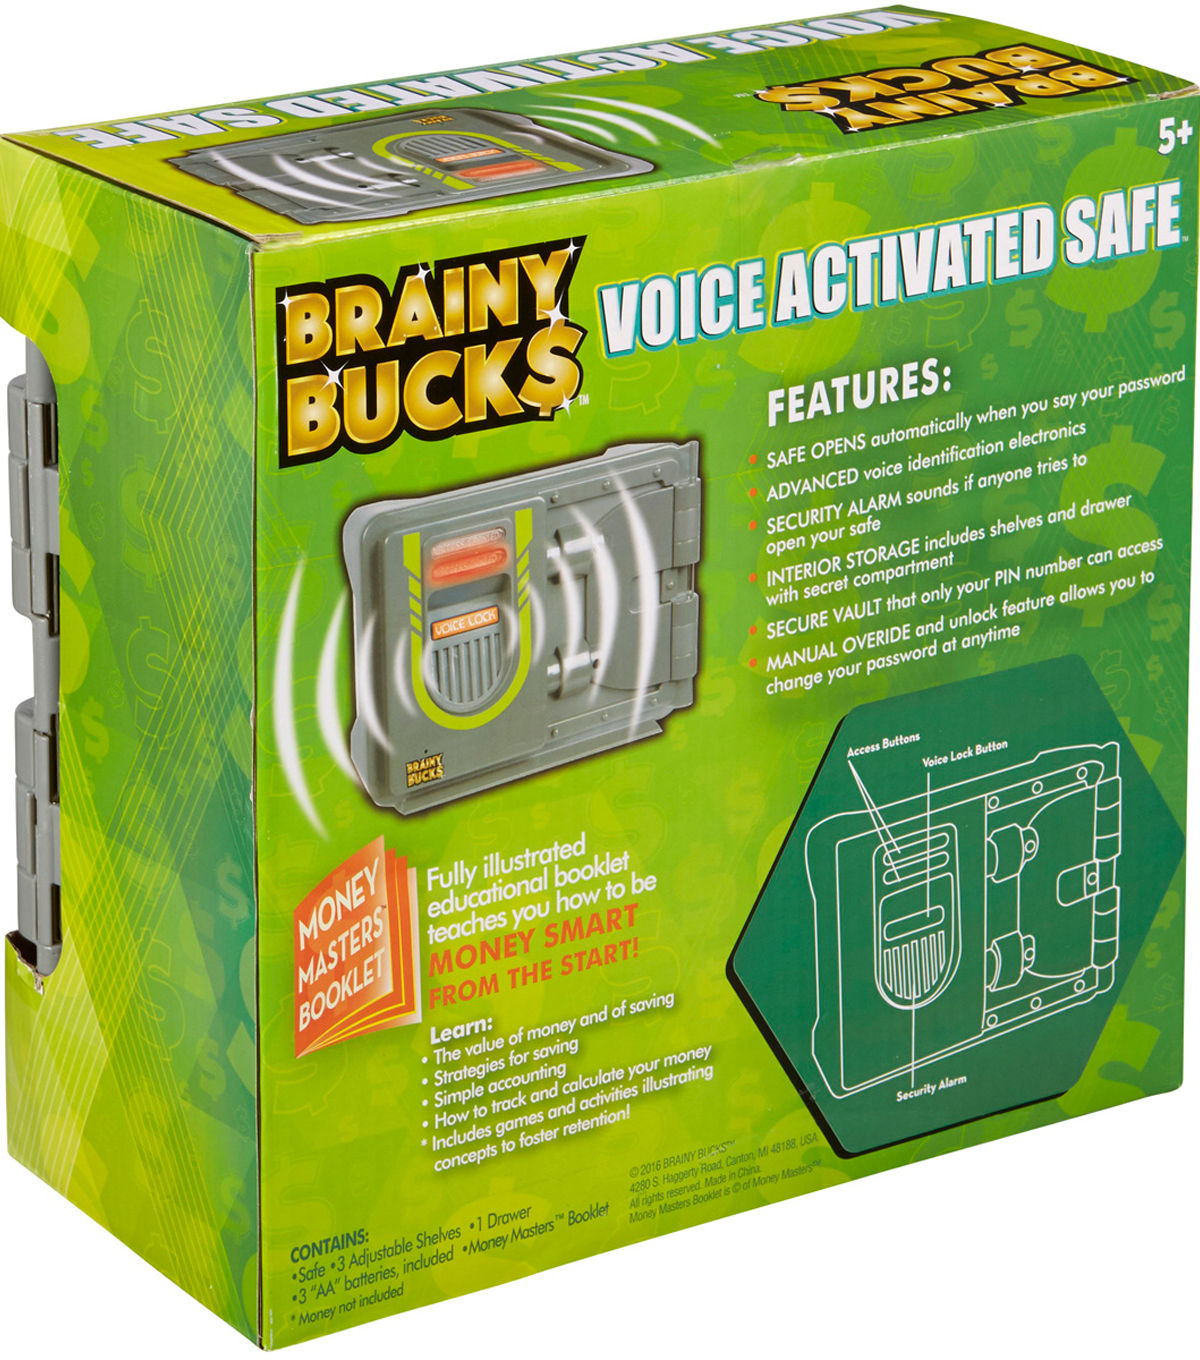 Brainy Bucks Voice Activated Safe